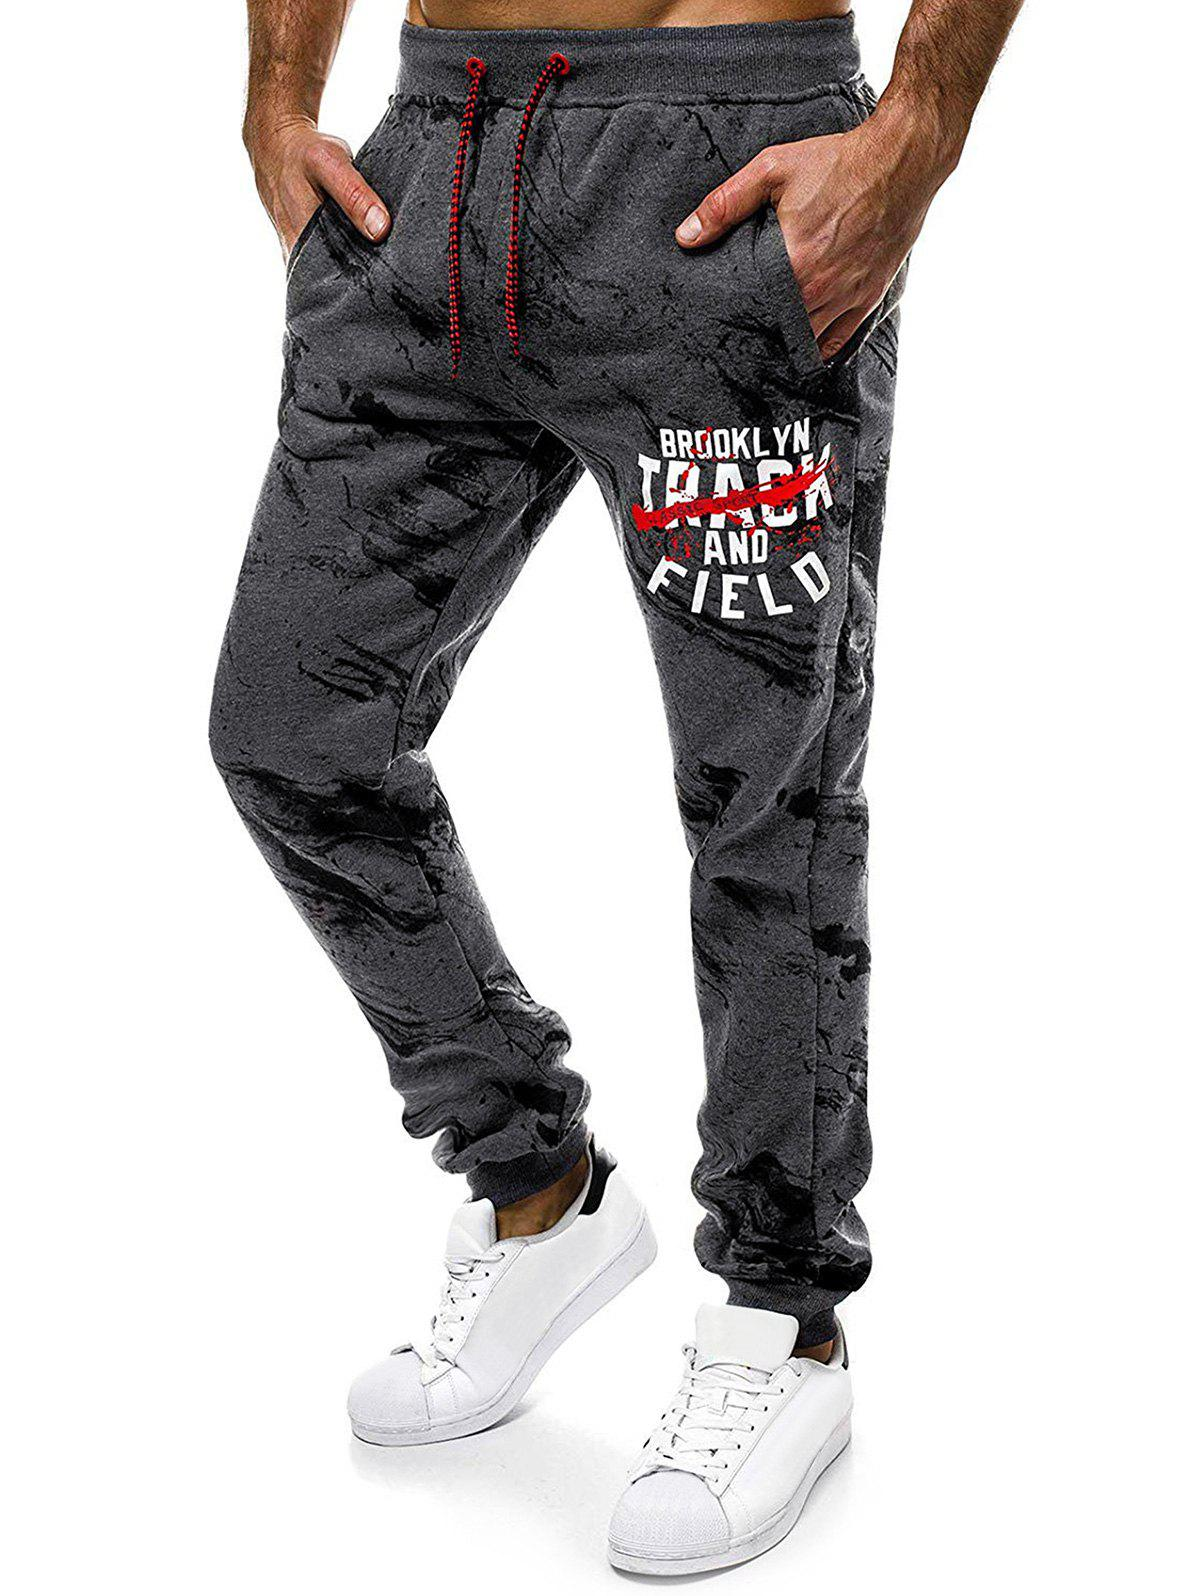 Store Letter Graphic Painting Print Drawstring Casual Jogger Pants